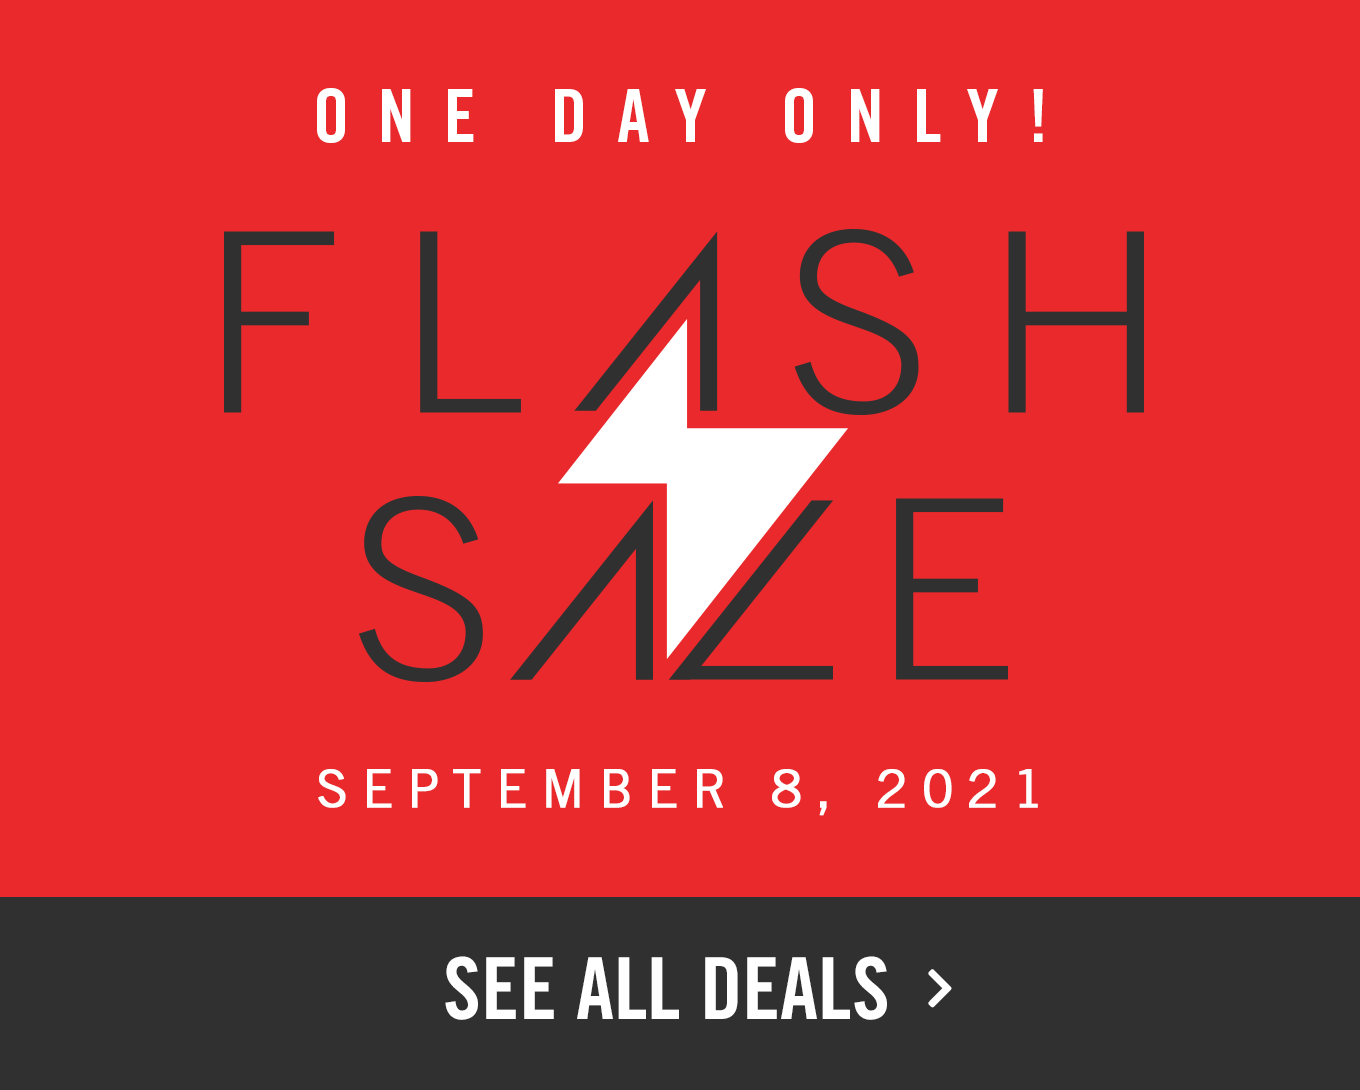 Flash Sale. One day only, September 8.